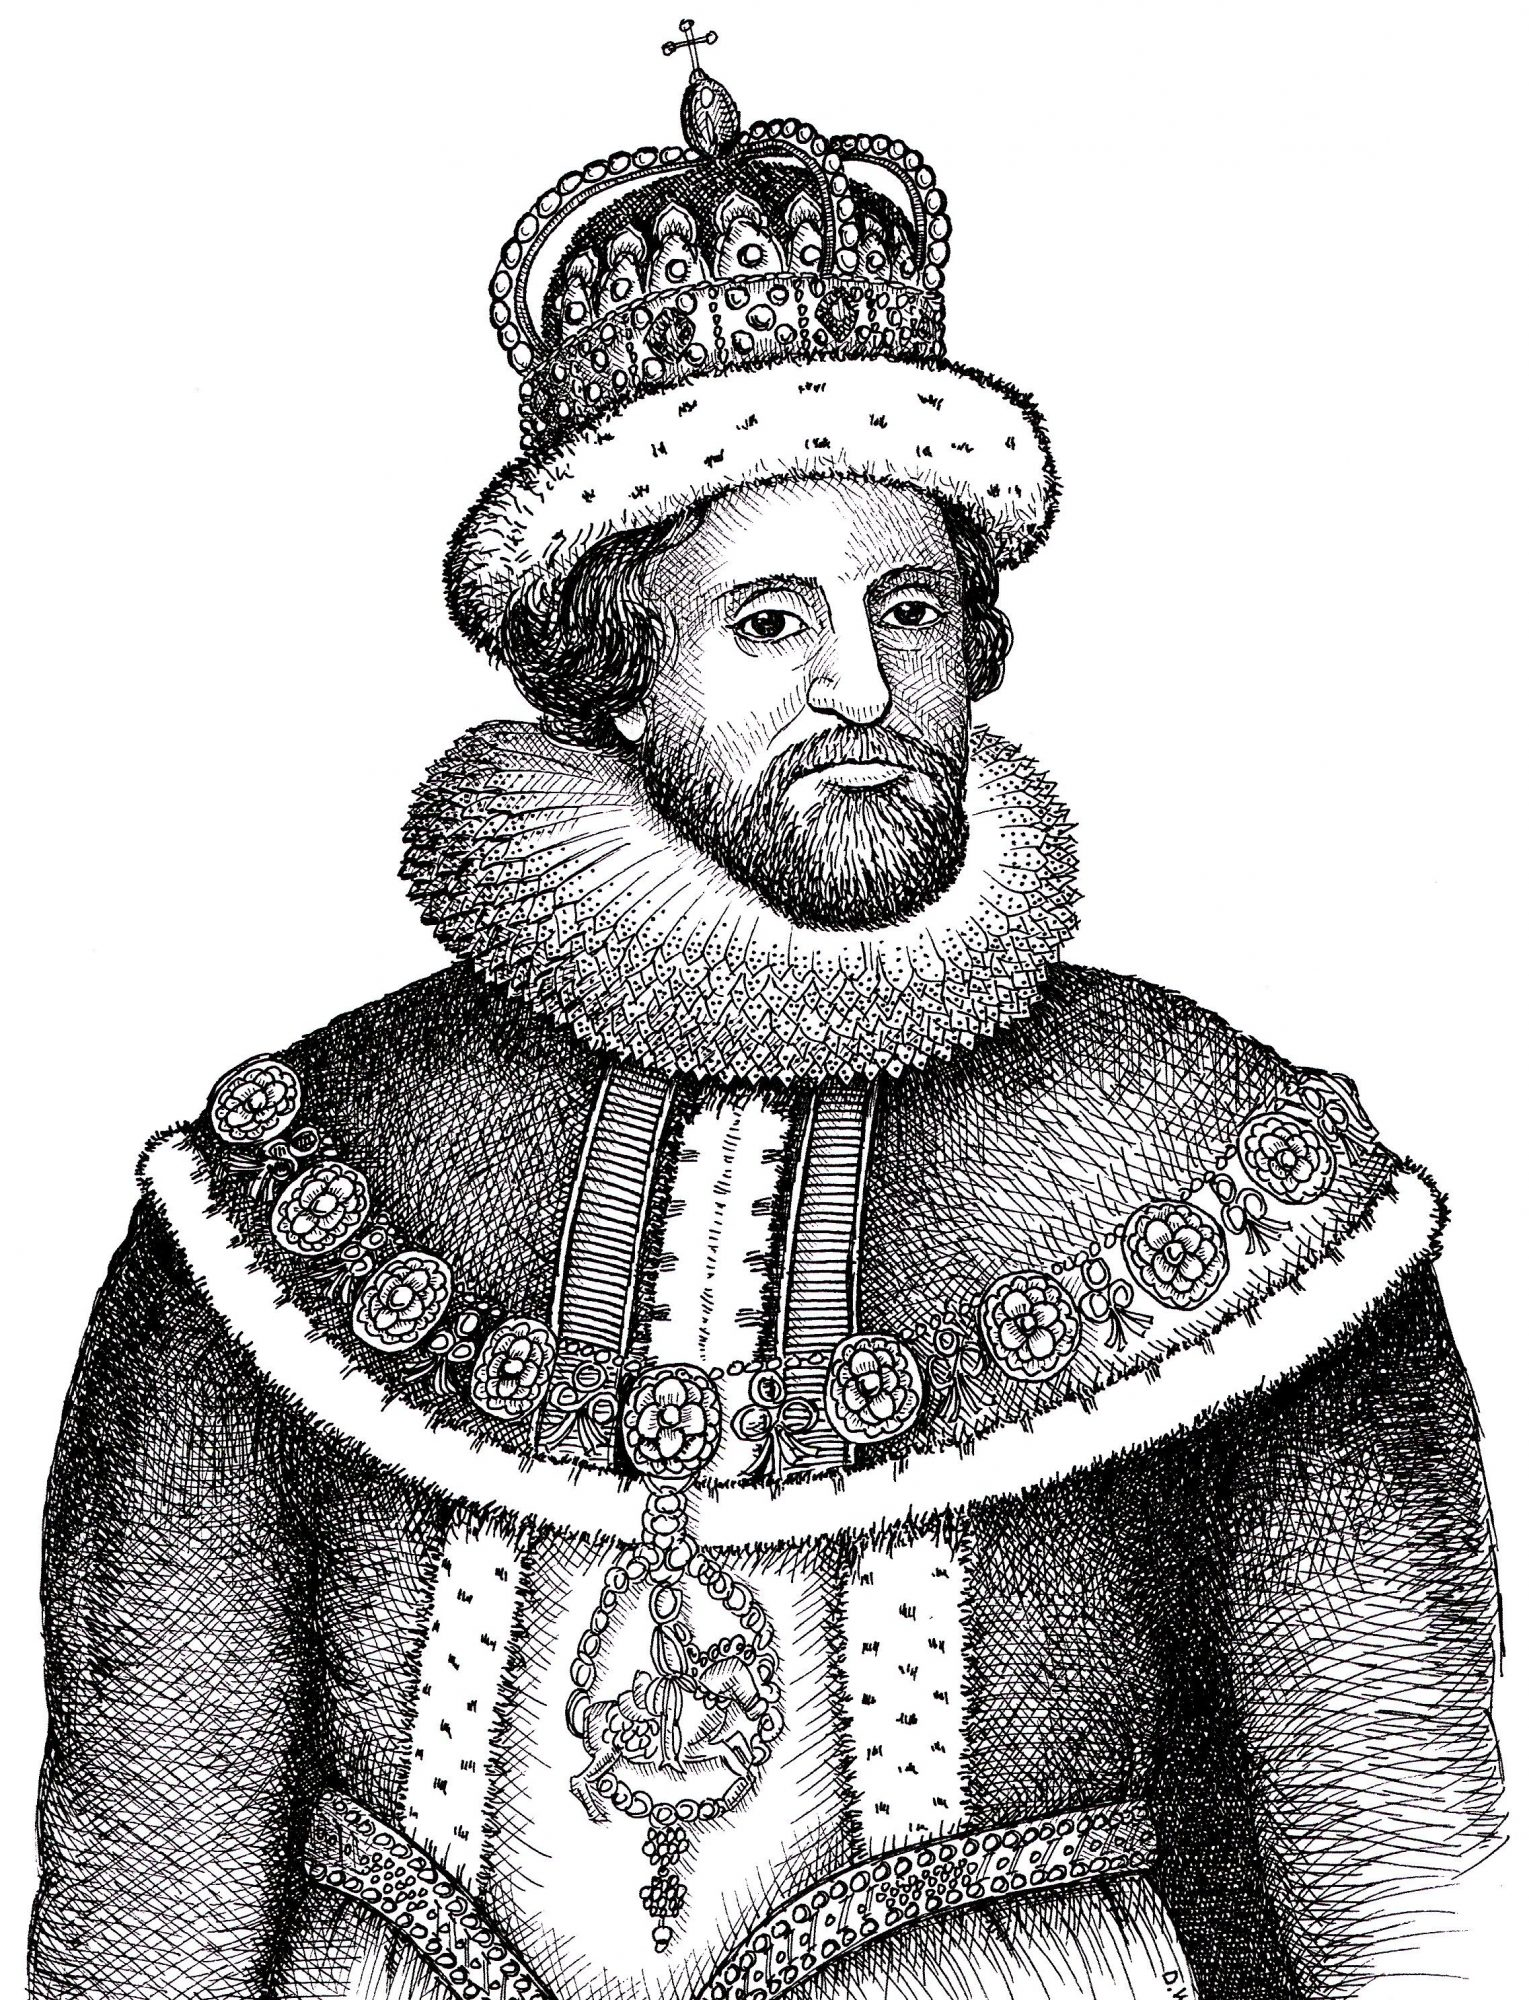 Pen and ink drawing of King James of England (1566 – 1625)